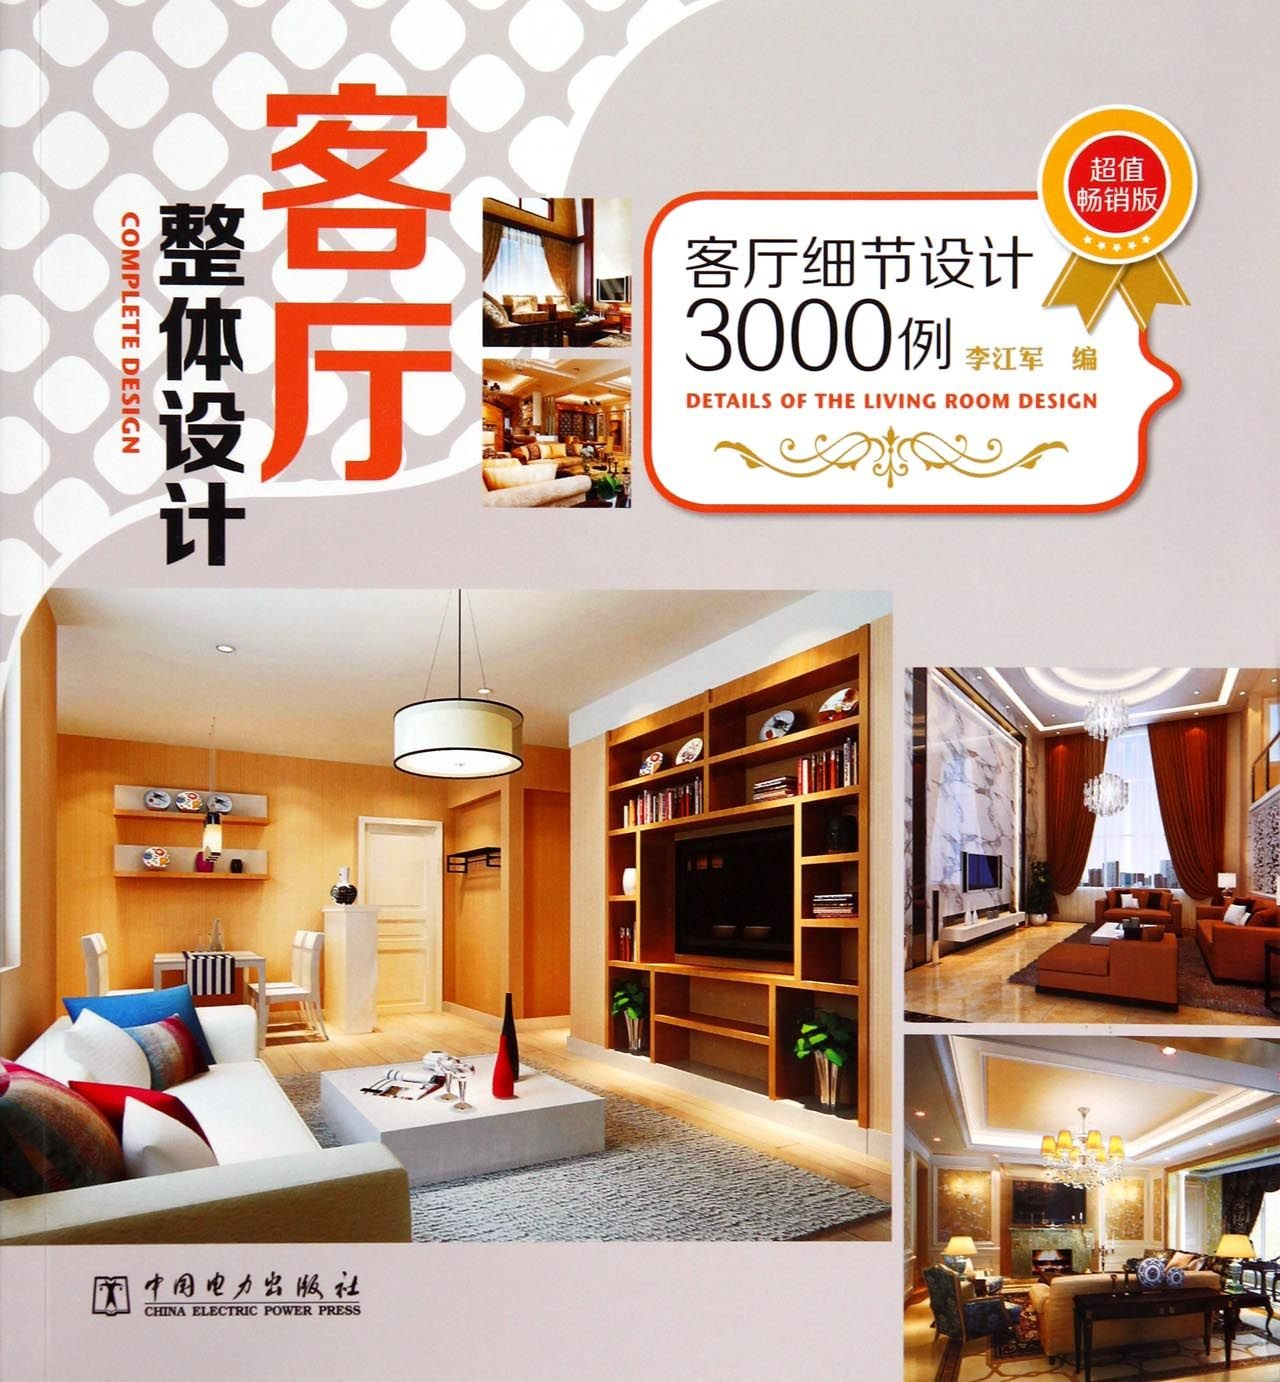 Read Online Living room detail design 3000 cases: Living the overall design(Chinese Edition) ebook